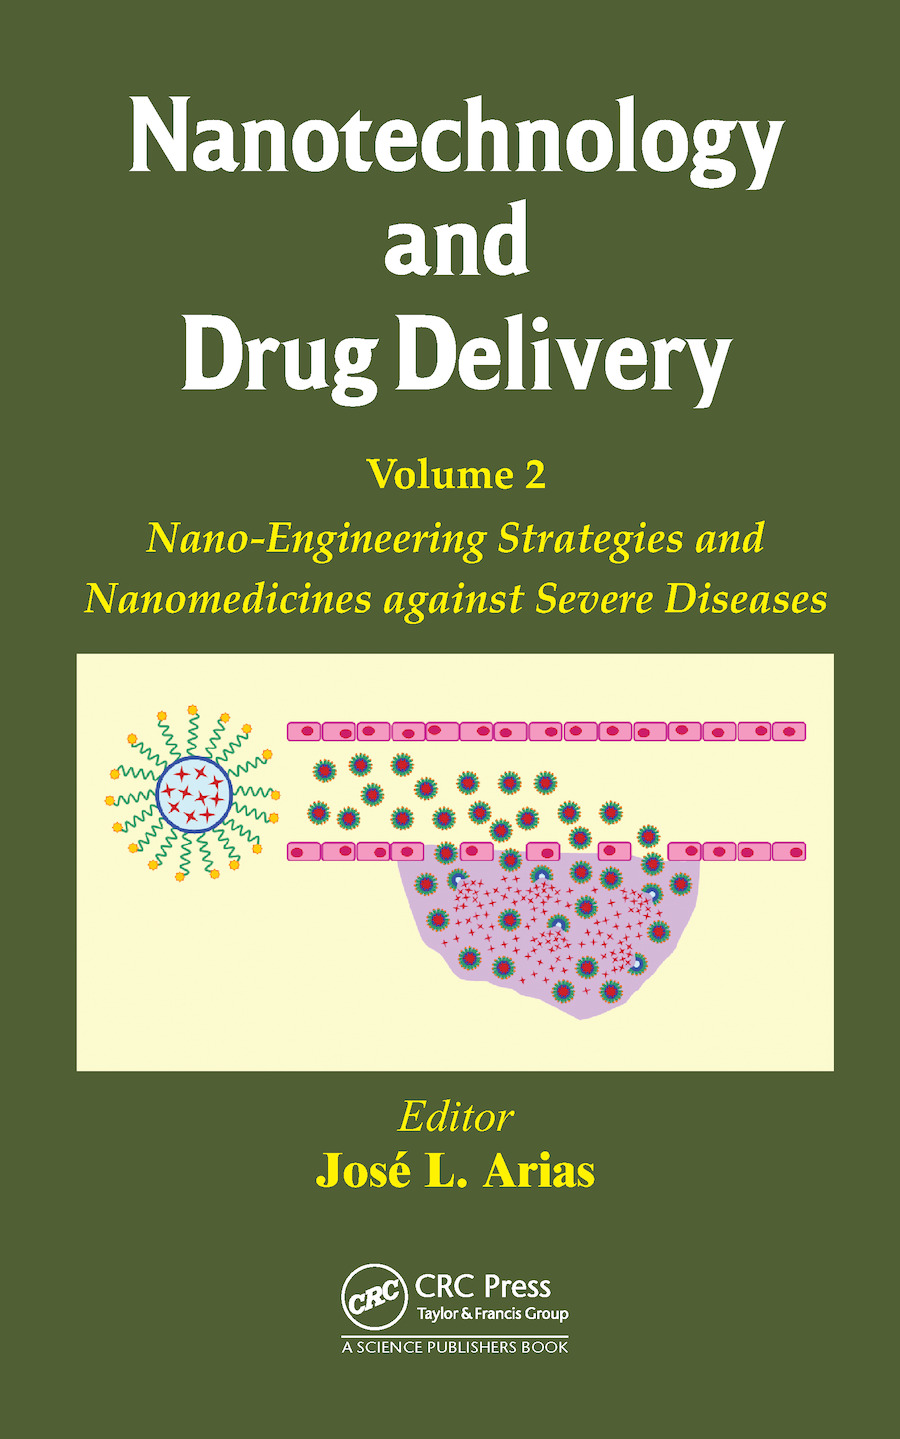 Nanotechnology and Drug Delivery, Volume Two